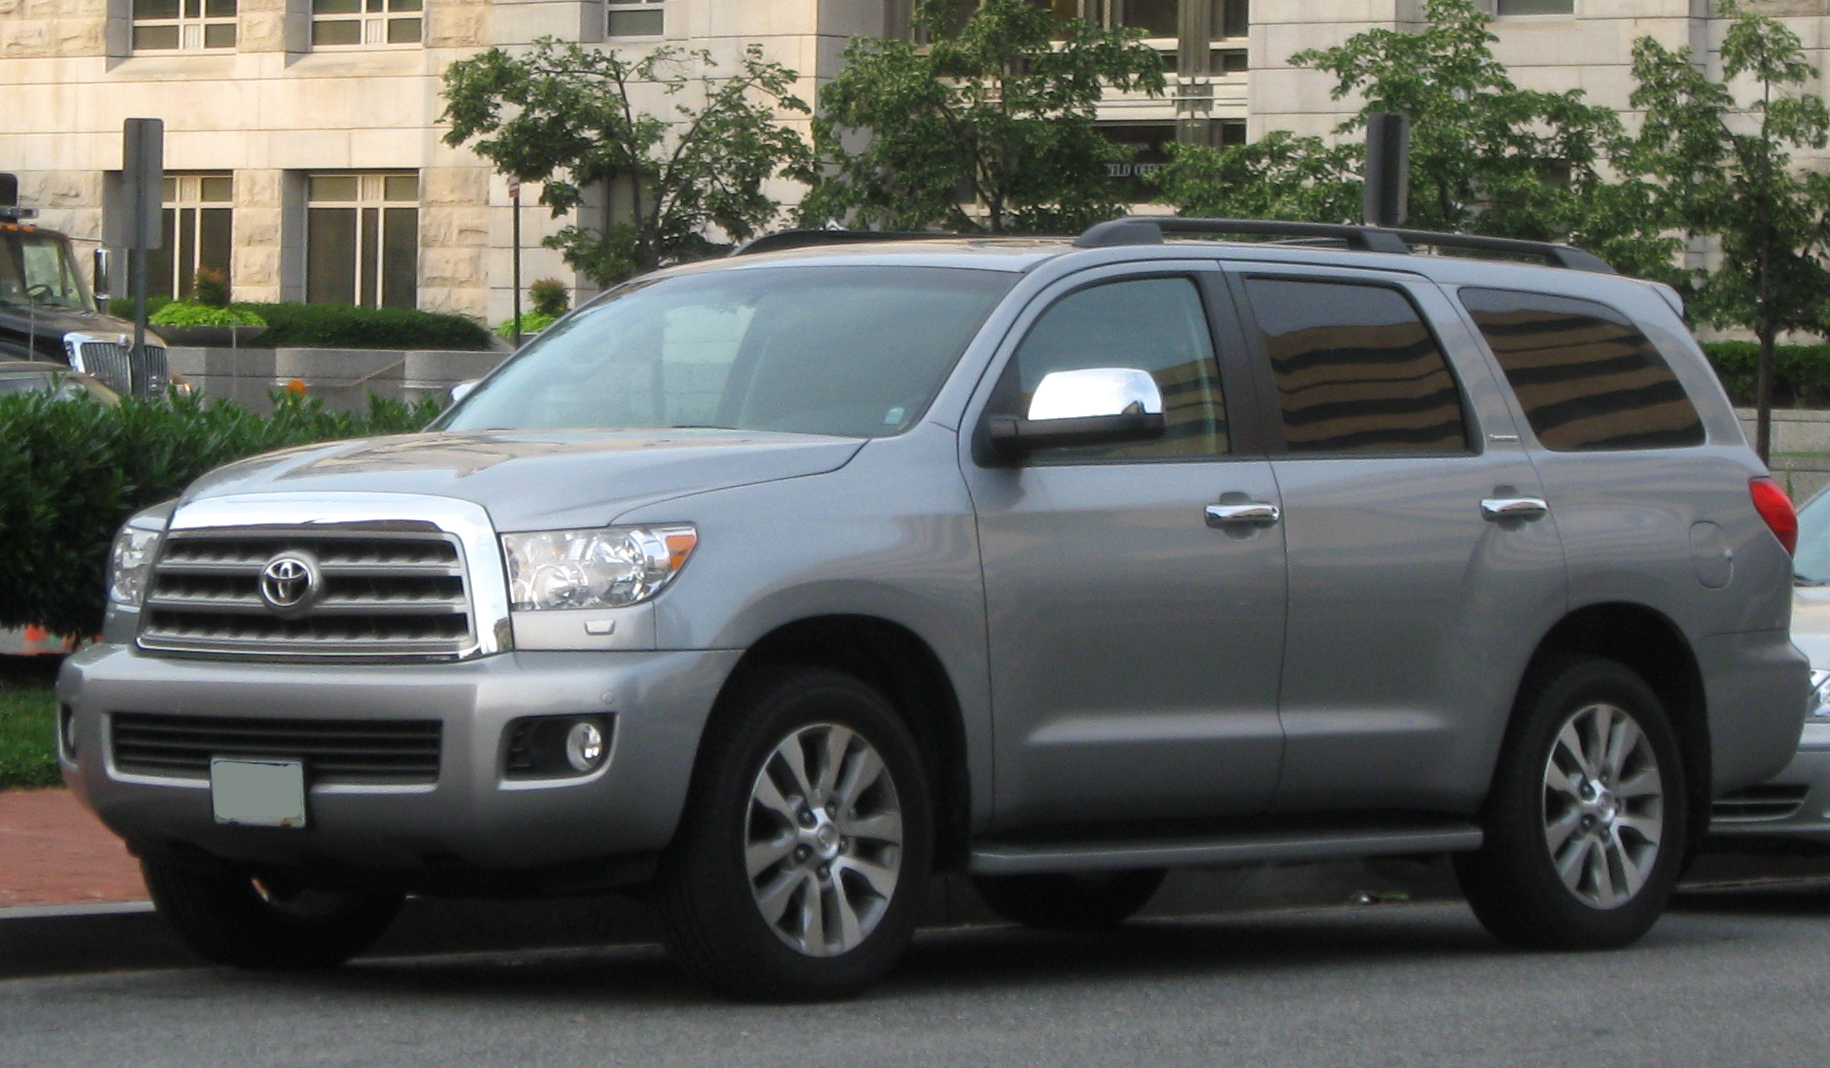 Toyota Sequoia Tractor & Construction Plant Wiki